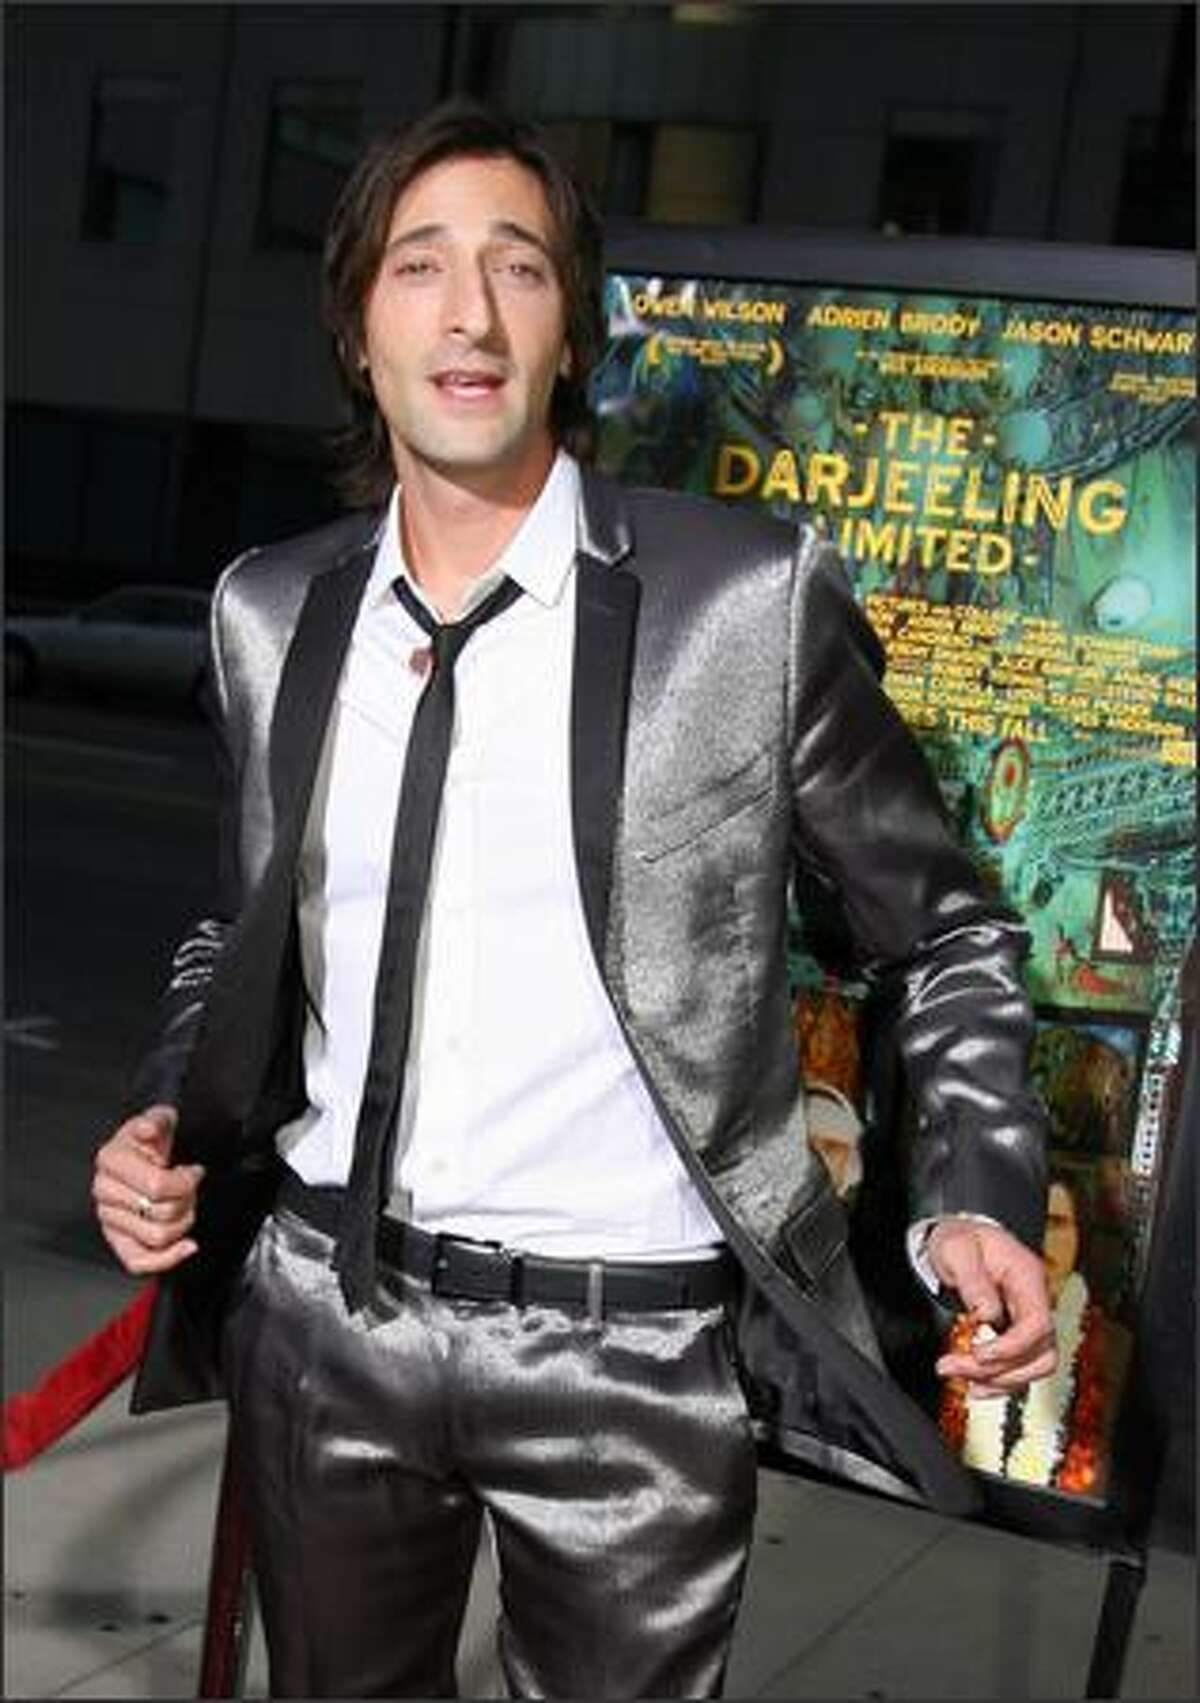 Actor Adrien Brody arrives at the premiere of The Darjeeling Limited in Beverly Hills, California. The film is about three American brothers, who have not spoken to each other in a year. They set off on a train voyage across India with a plan to find themselves and bond with each other.